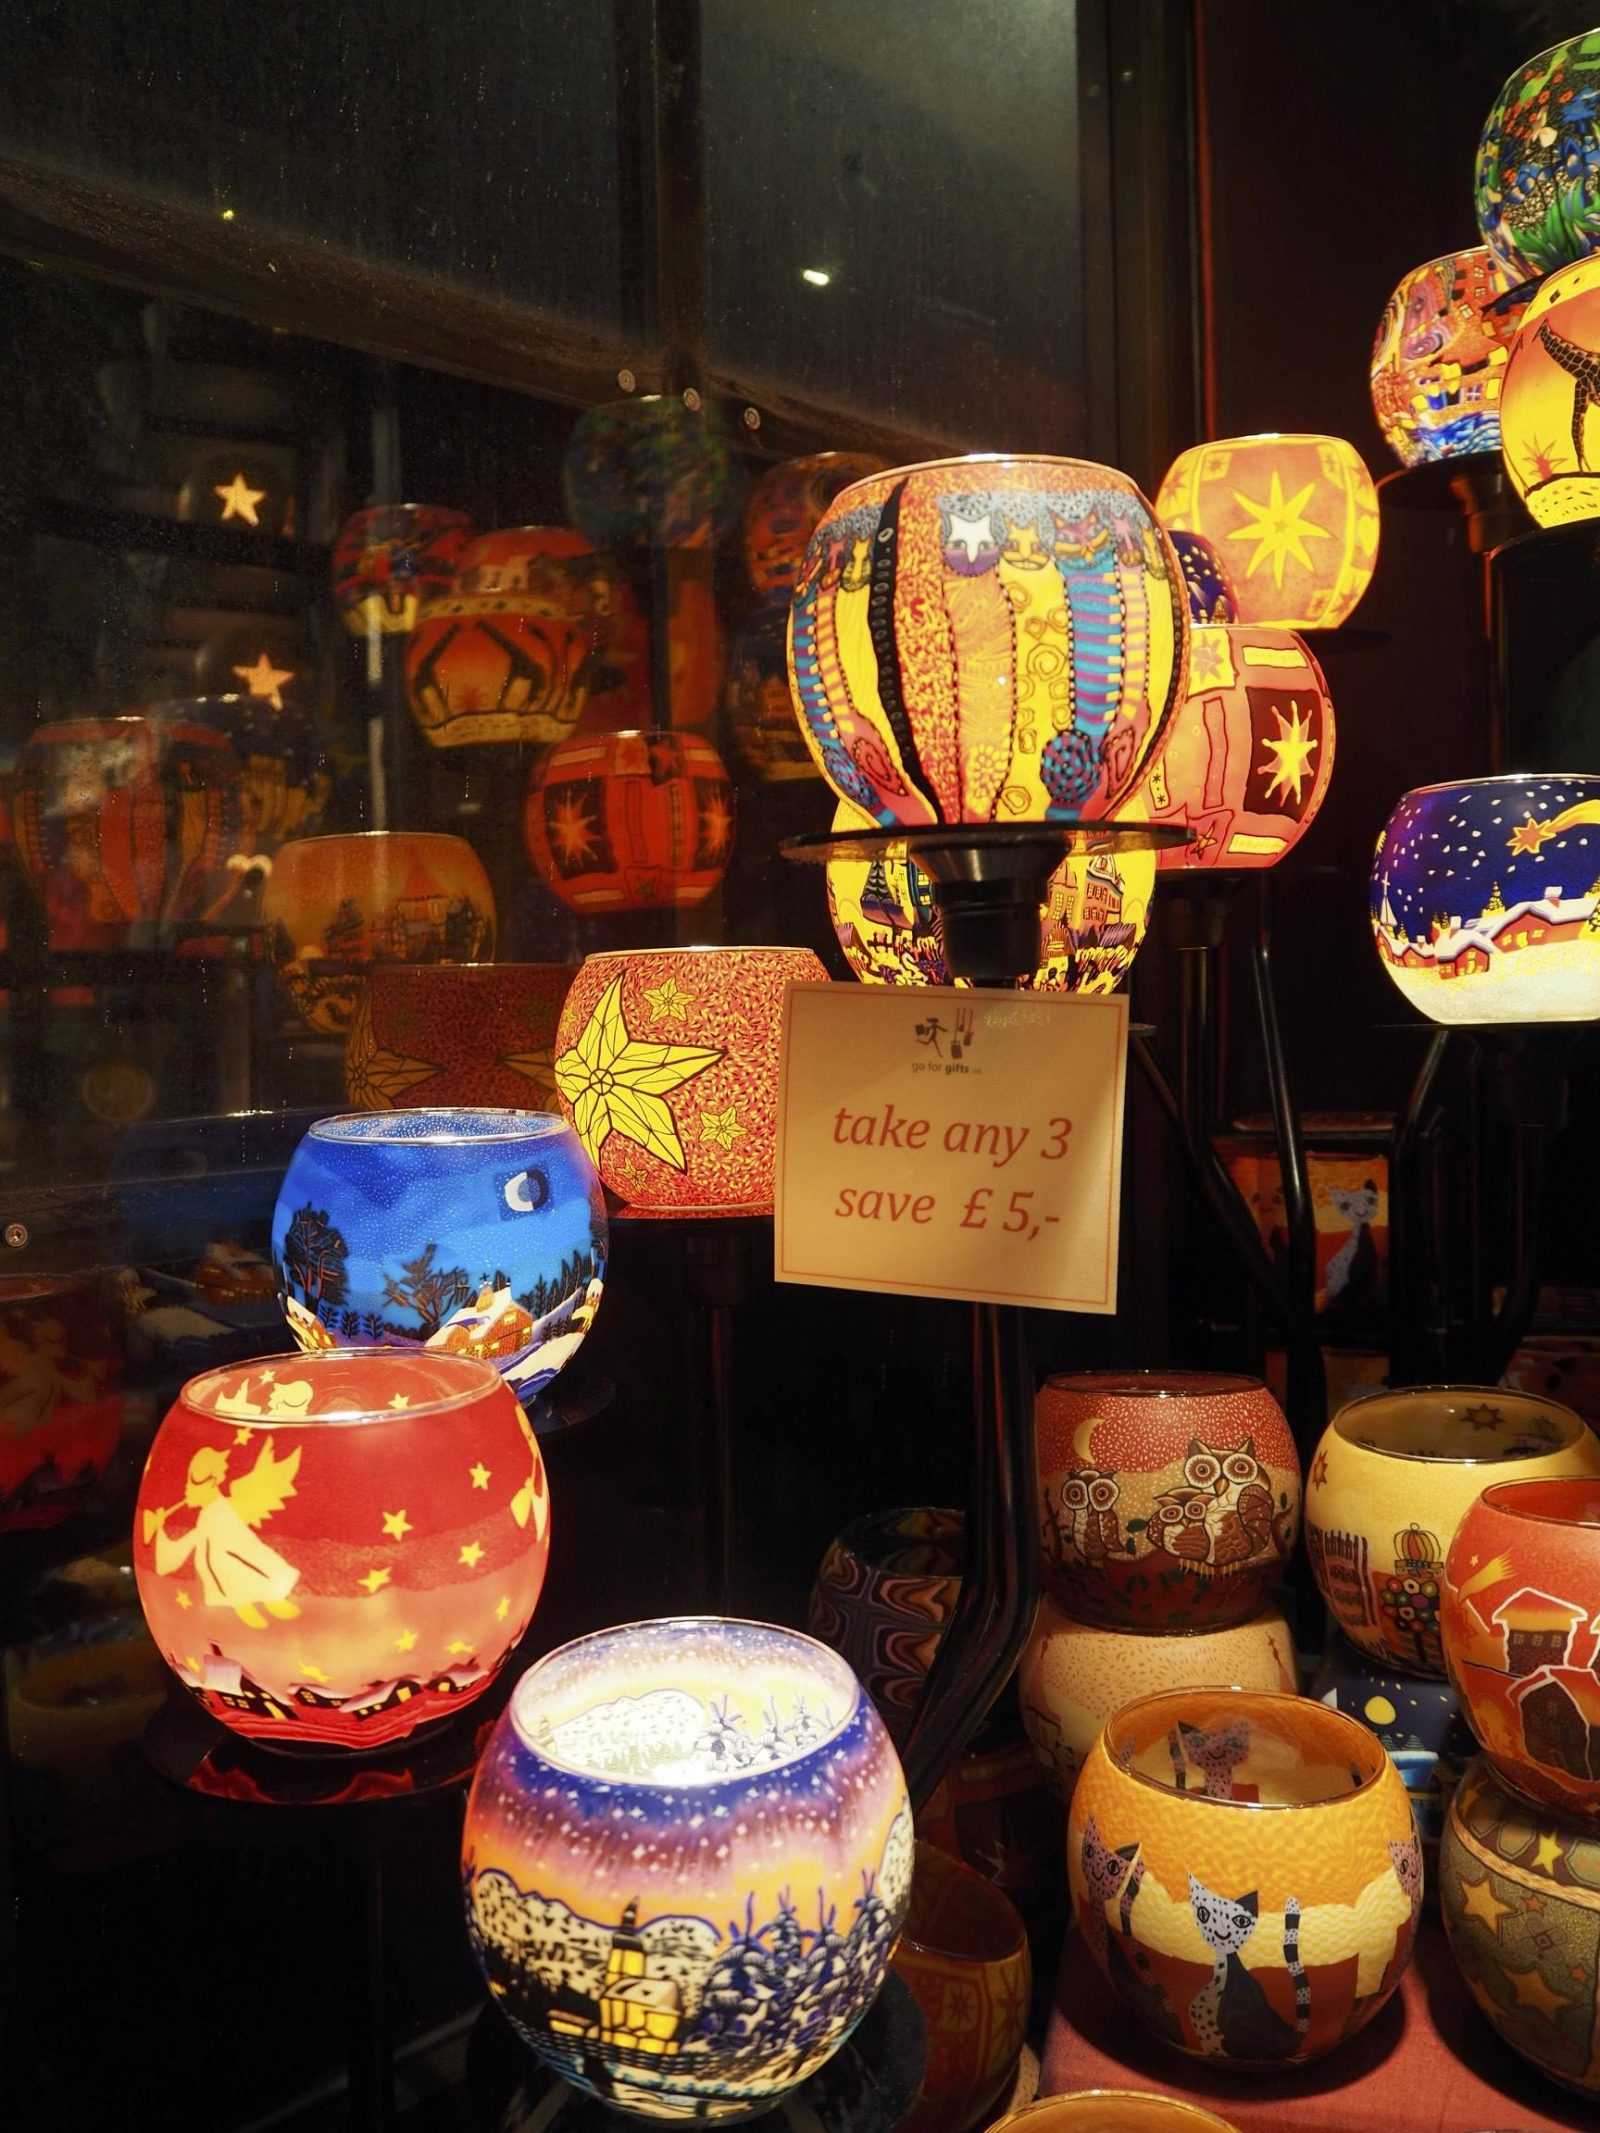 Candle-holders on sale at Edinburgh's Christmas market; photo by Last Year's Girl.